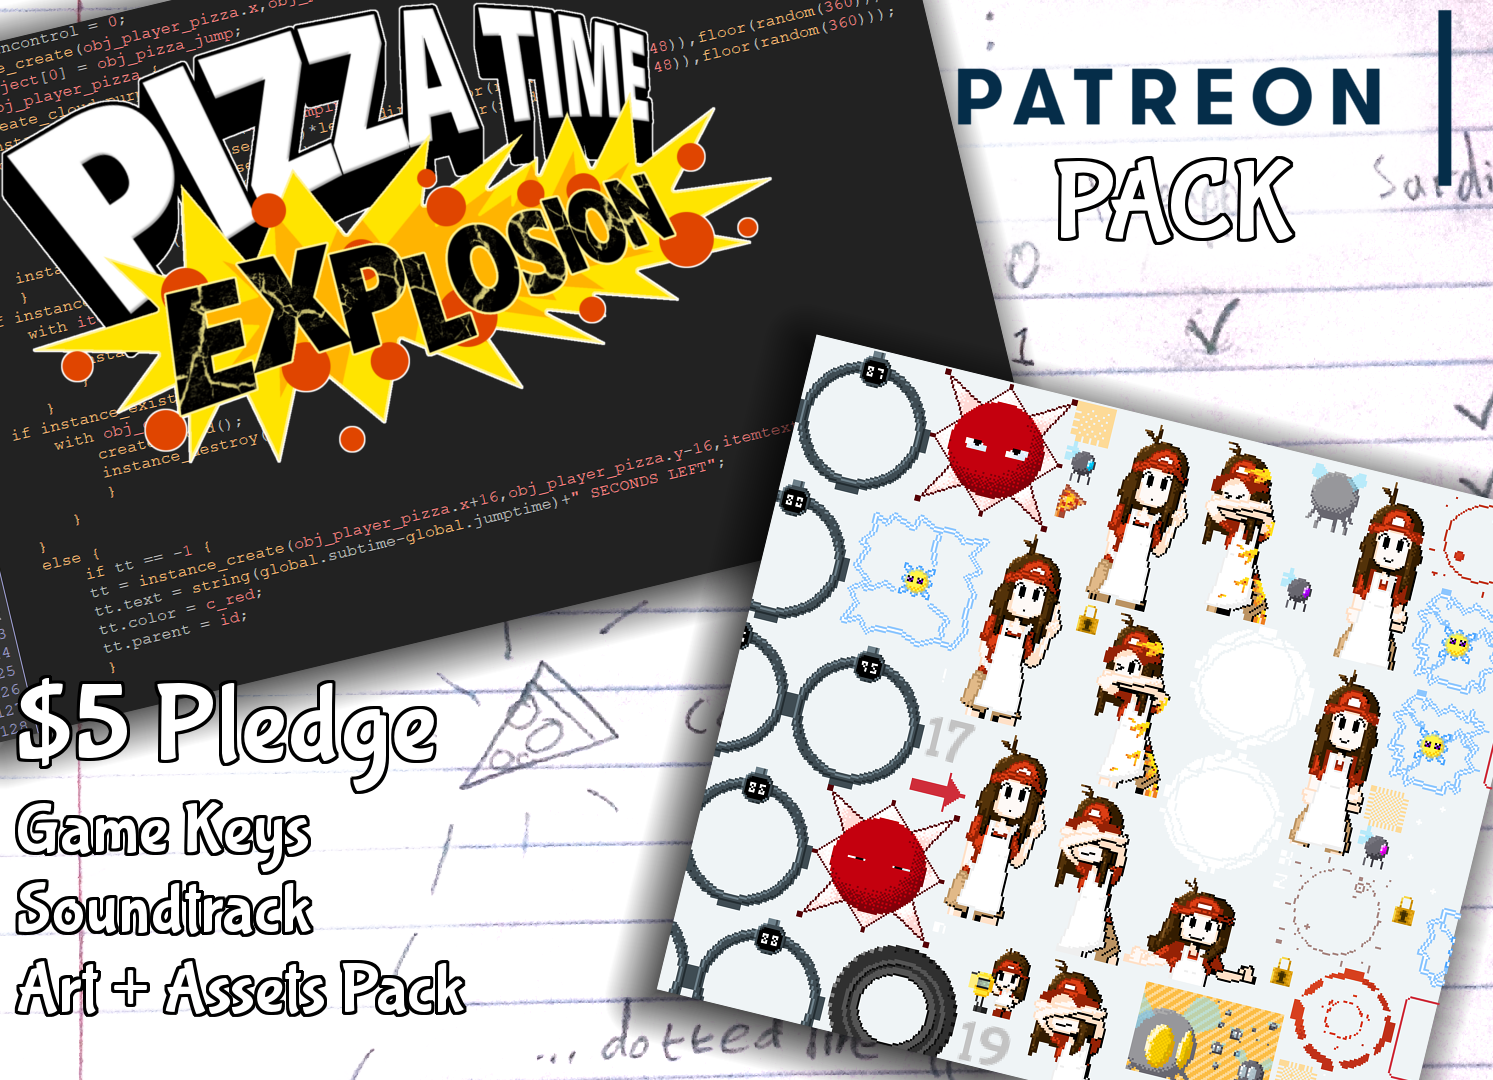 Pizza Time Explosion Patreon Pack - $5 Pledge gets you: Game Keys, Soundtrack, and Art + Assets Pack